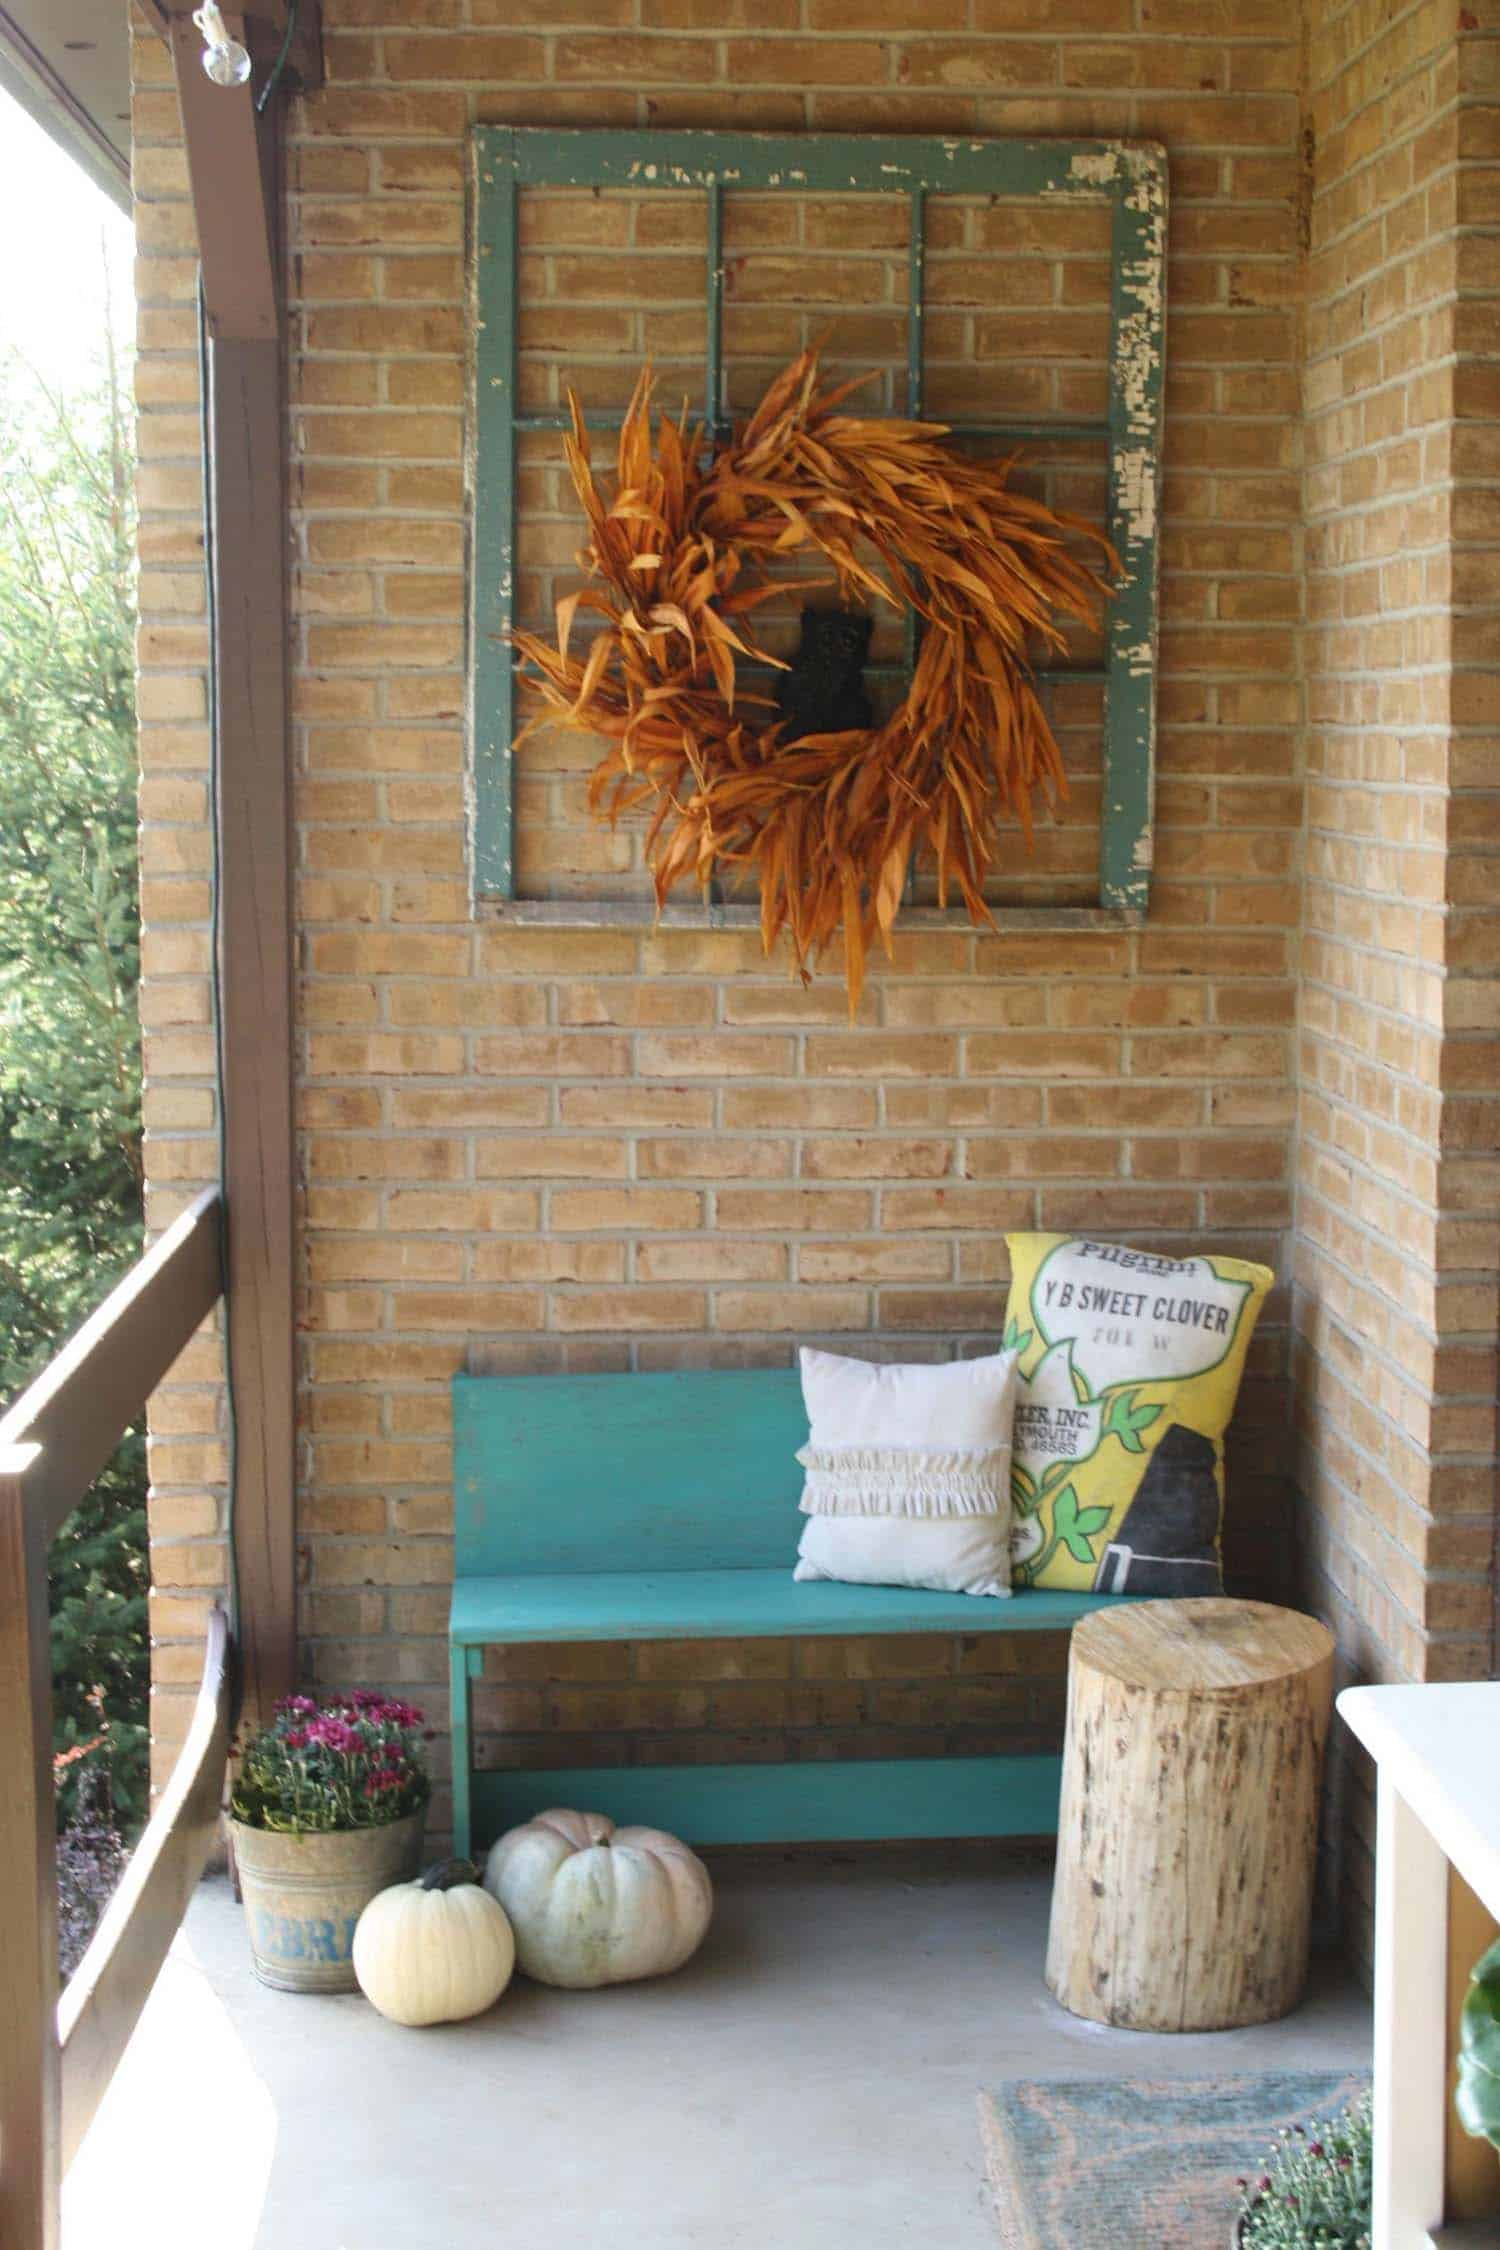 46 of the coziest ways to decorate your outdoor spaces for for Ideas for pictures